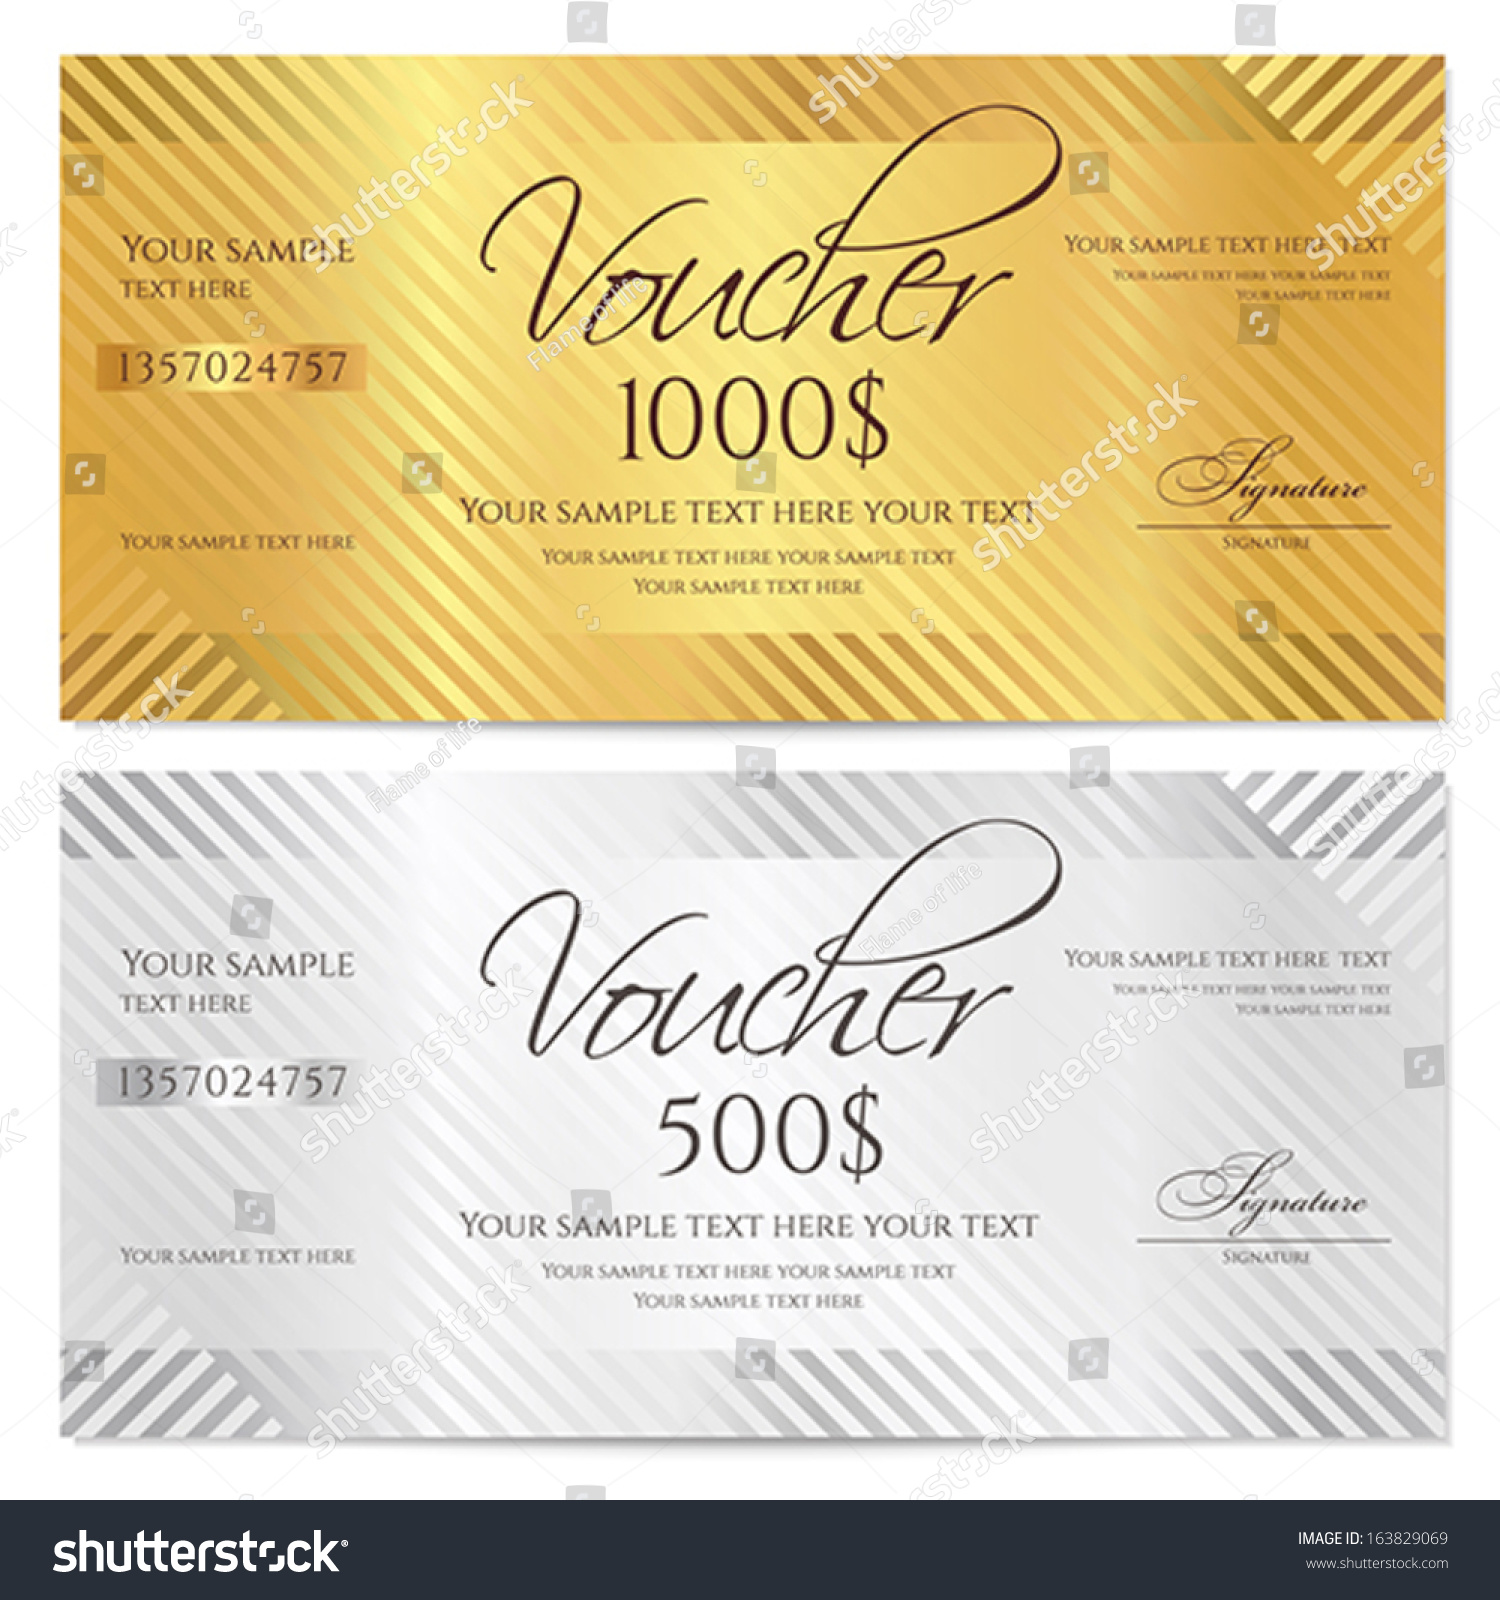 Wording For Gift Vouchers Template Food Voucher Template 7 – Sample Vouchers